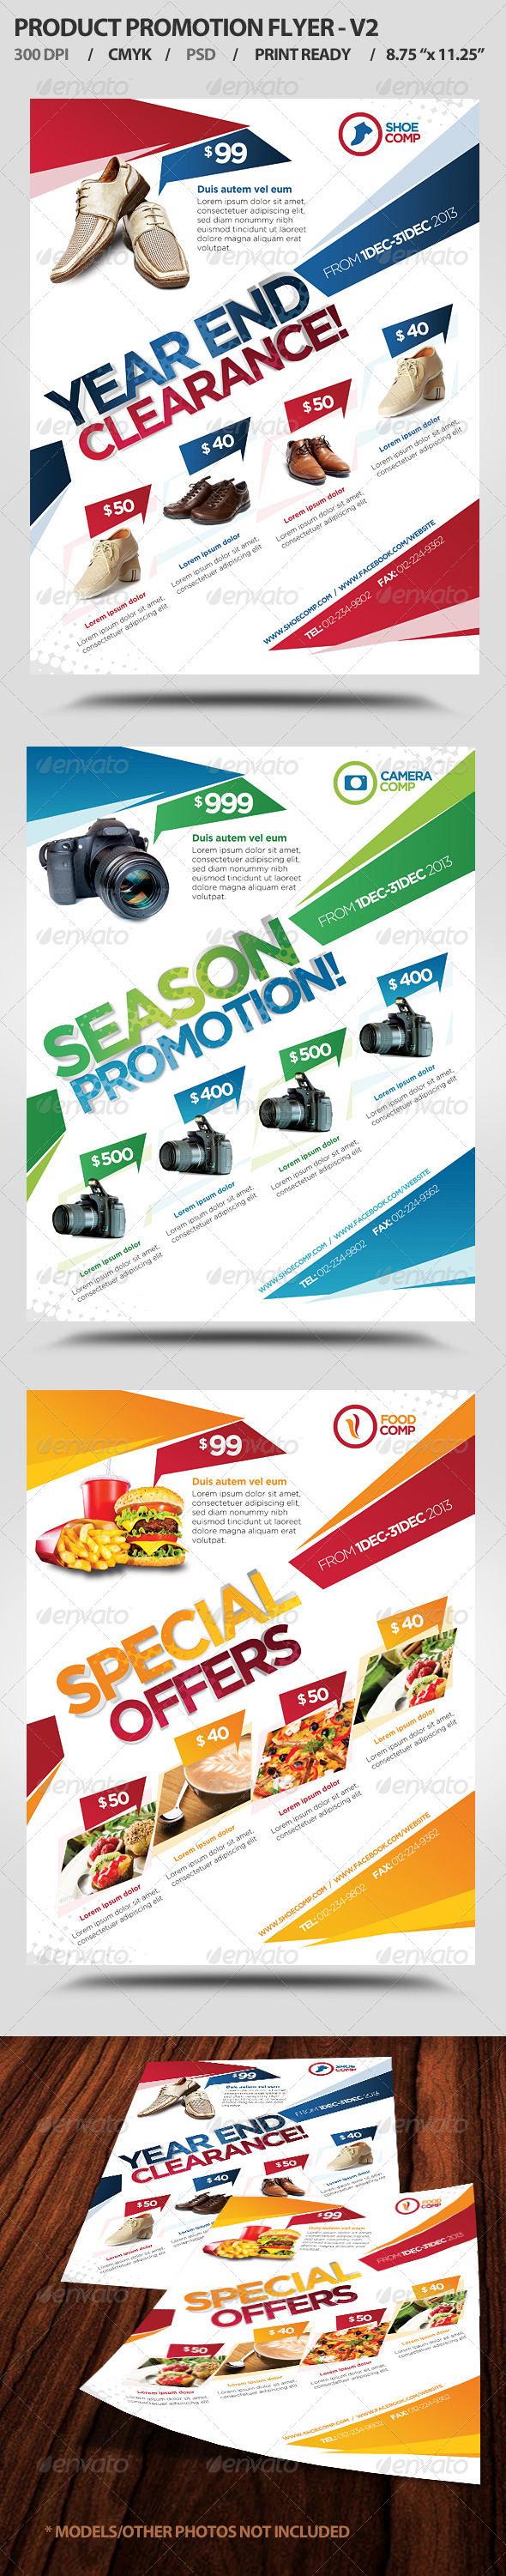 Product Promotion Flyer V2  - Corporate Flyers